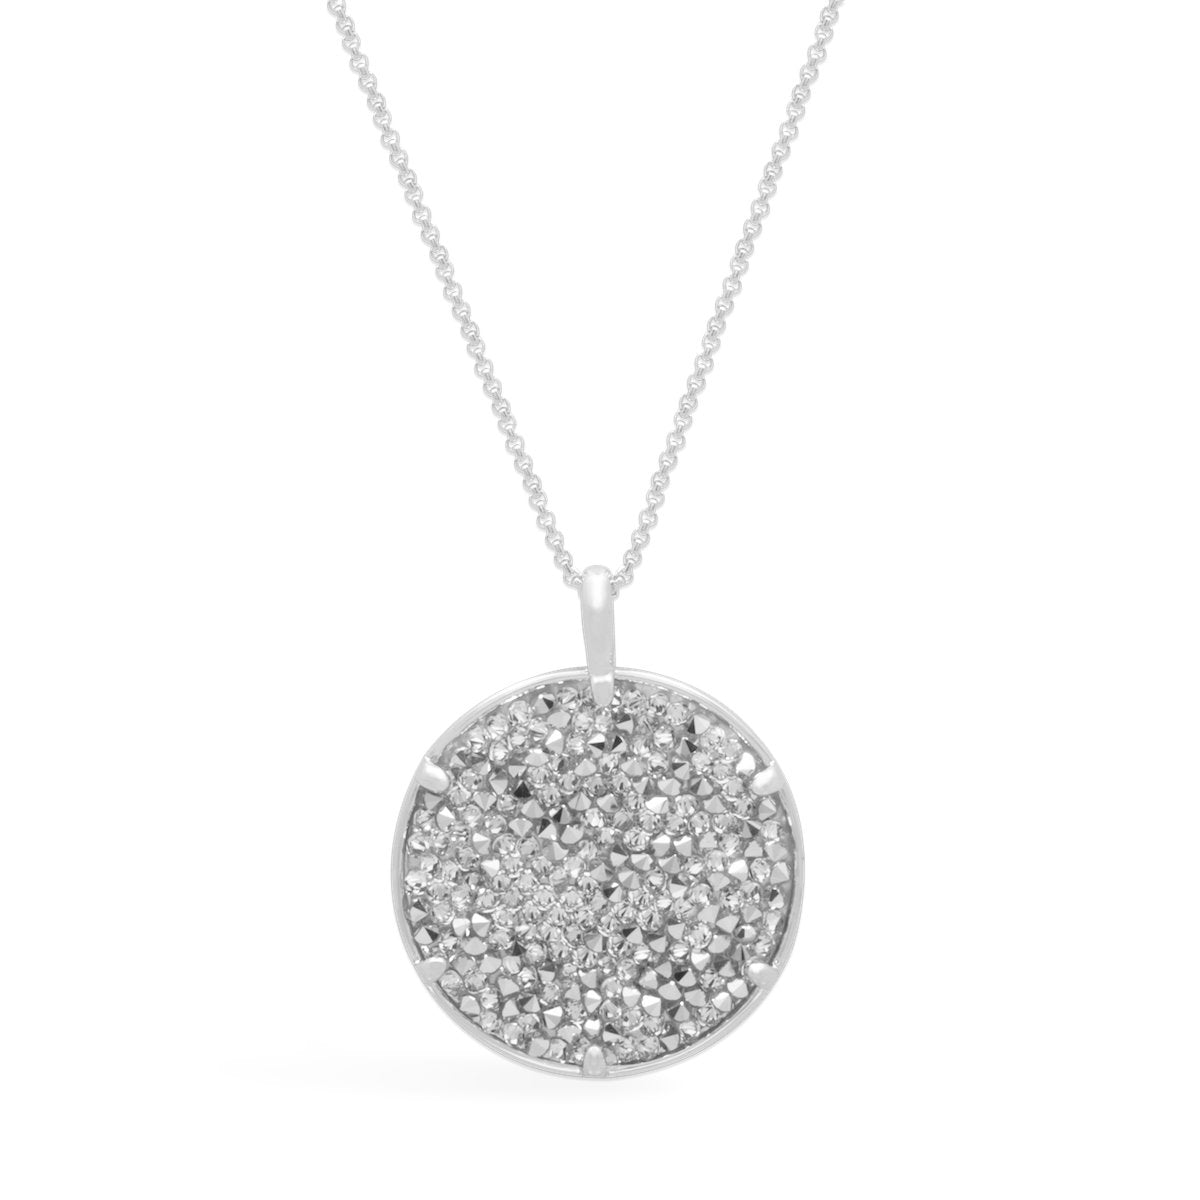 Ara Medallion Necklace forevercrystals Silver